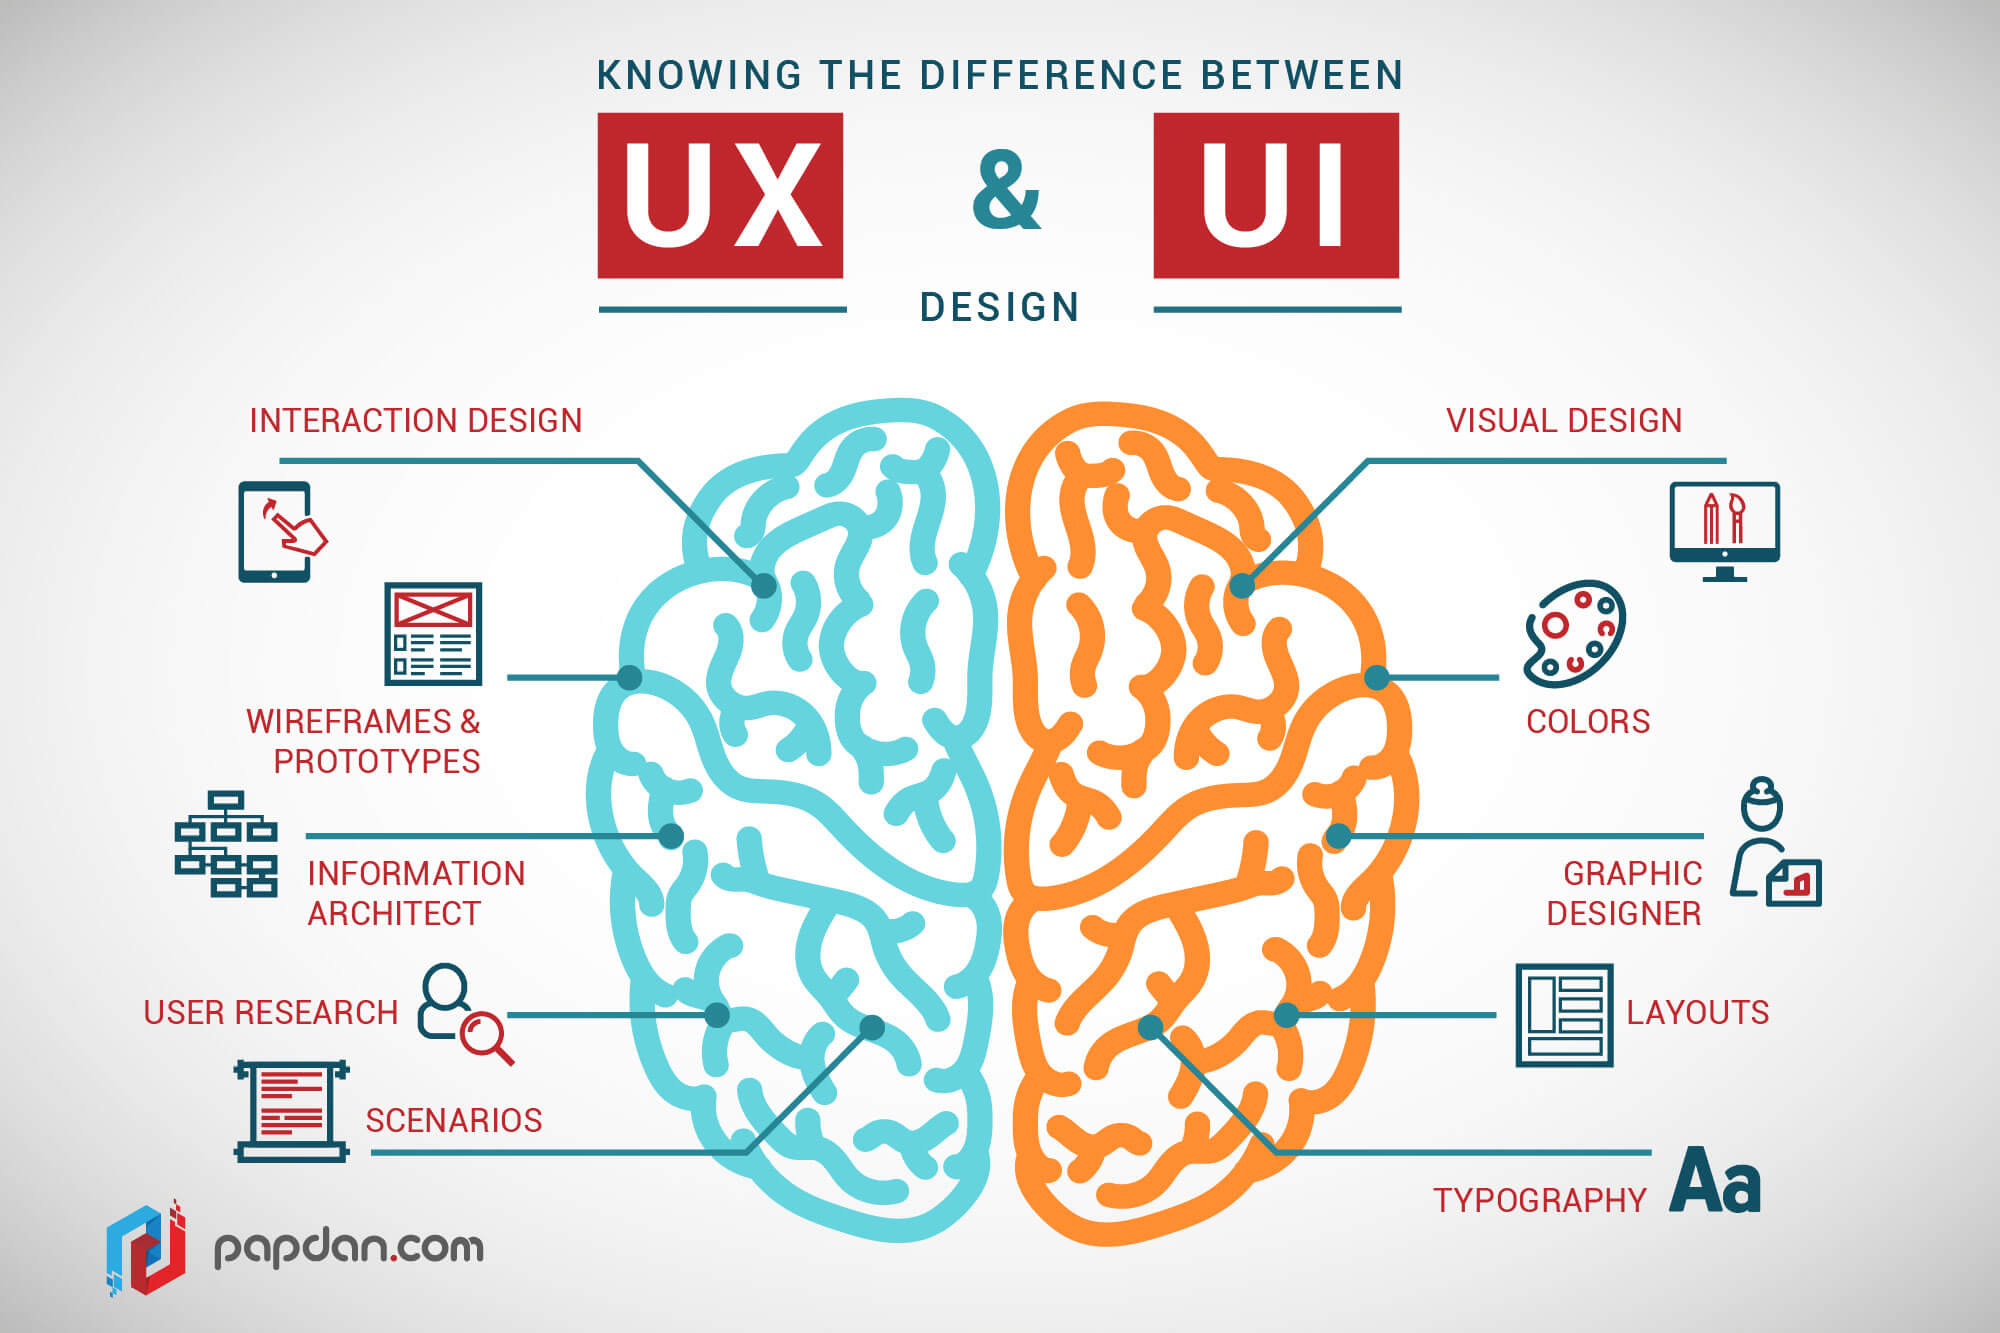 diagram of a brain, showing the difference between UX (interactions, wireframes, information architecture, user research) and UI (visual, color, layouts, typefaces)